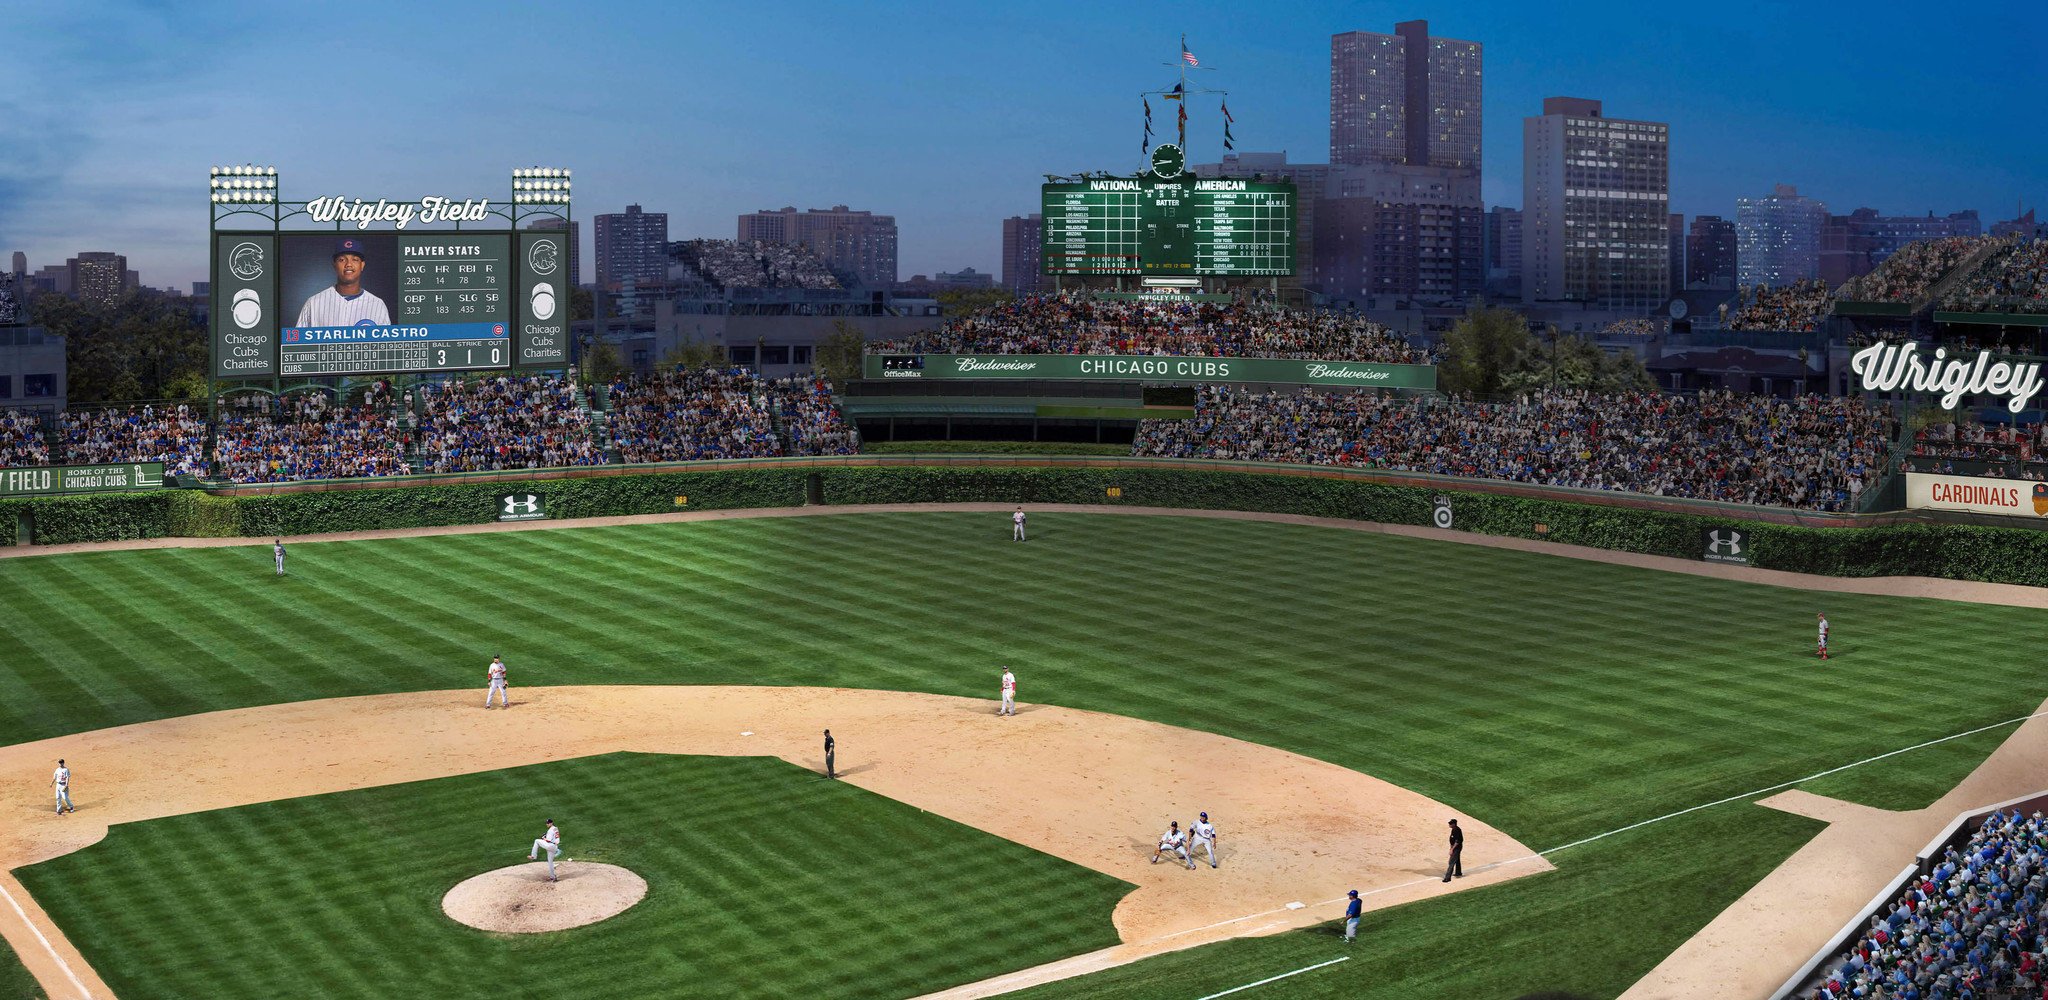 Wrigley field wall mural image collections home wall decoration wrigley field wall mural wall murals ideas baseball field wallpaper wallpapersafari amipublicfo image collections amipublicfo Gallery